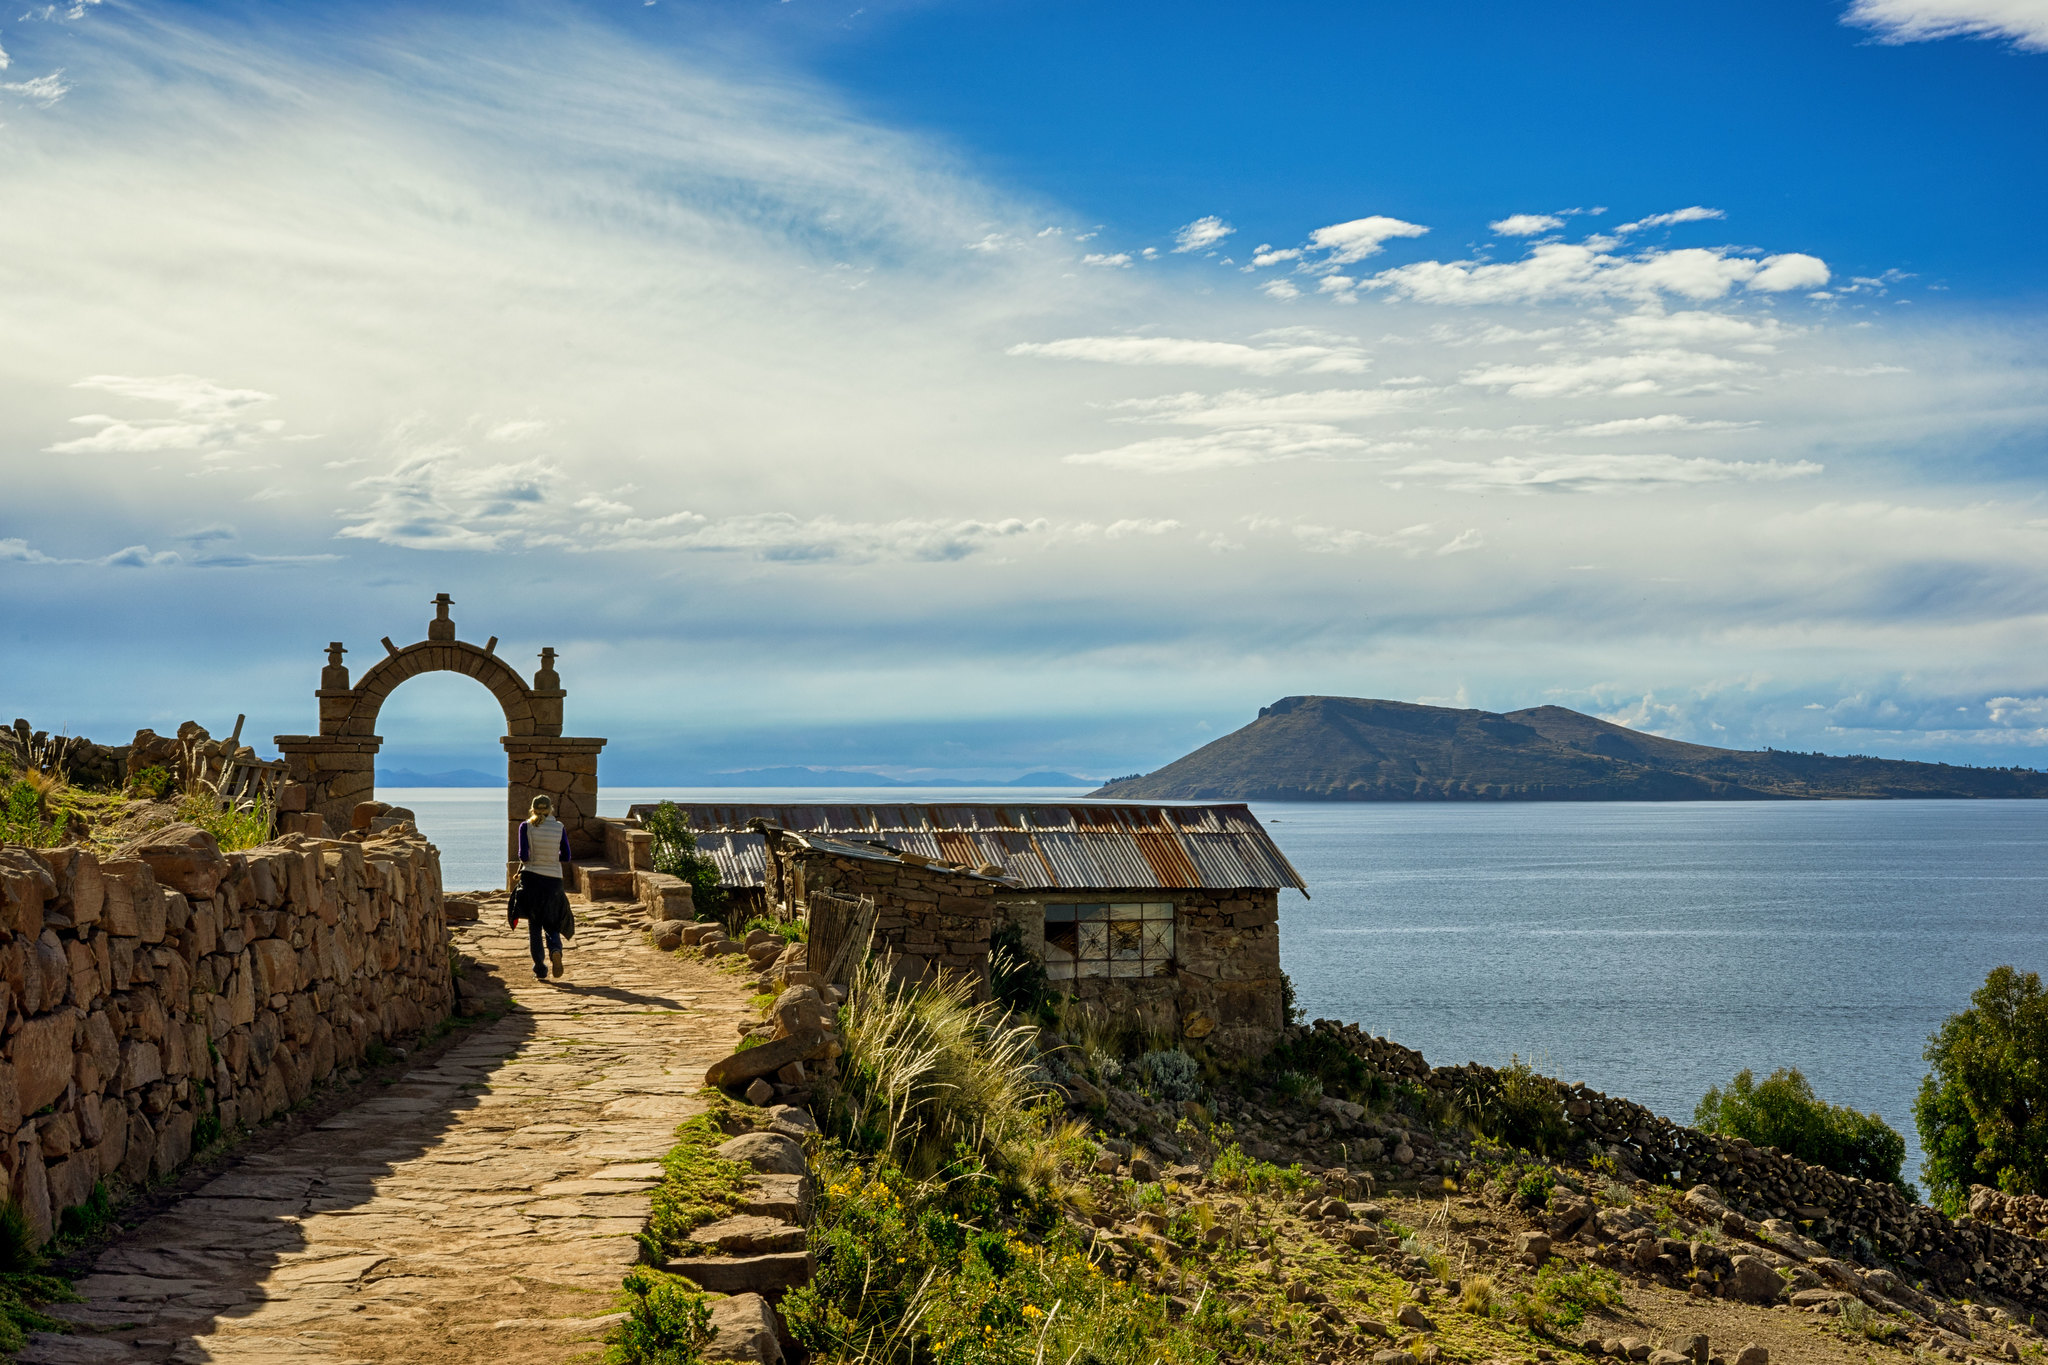 Mysteries of The Inca Empire | Taquile Island, Lake Titicaca, Peru